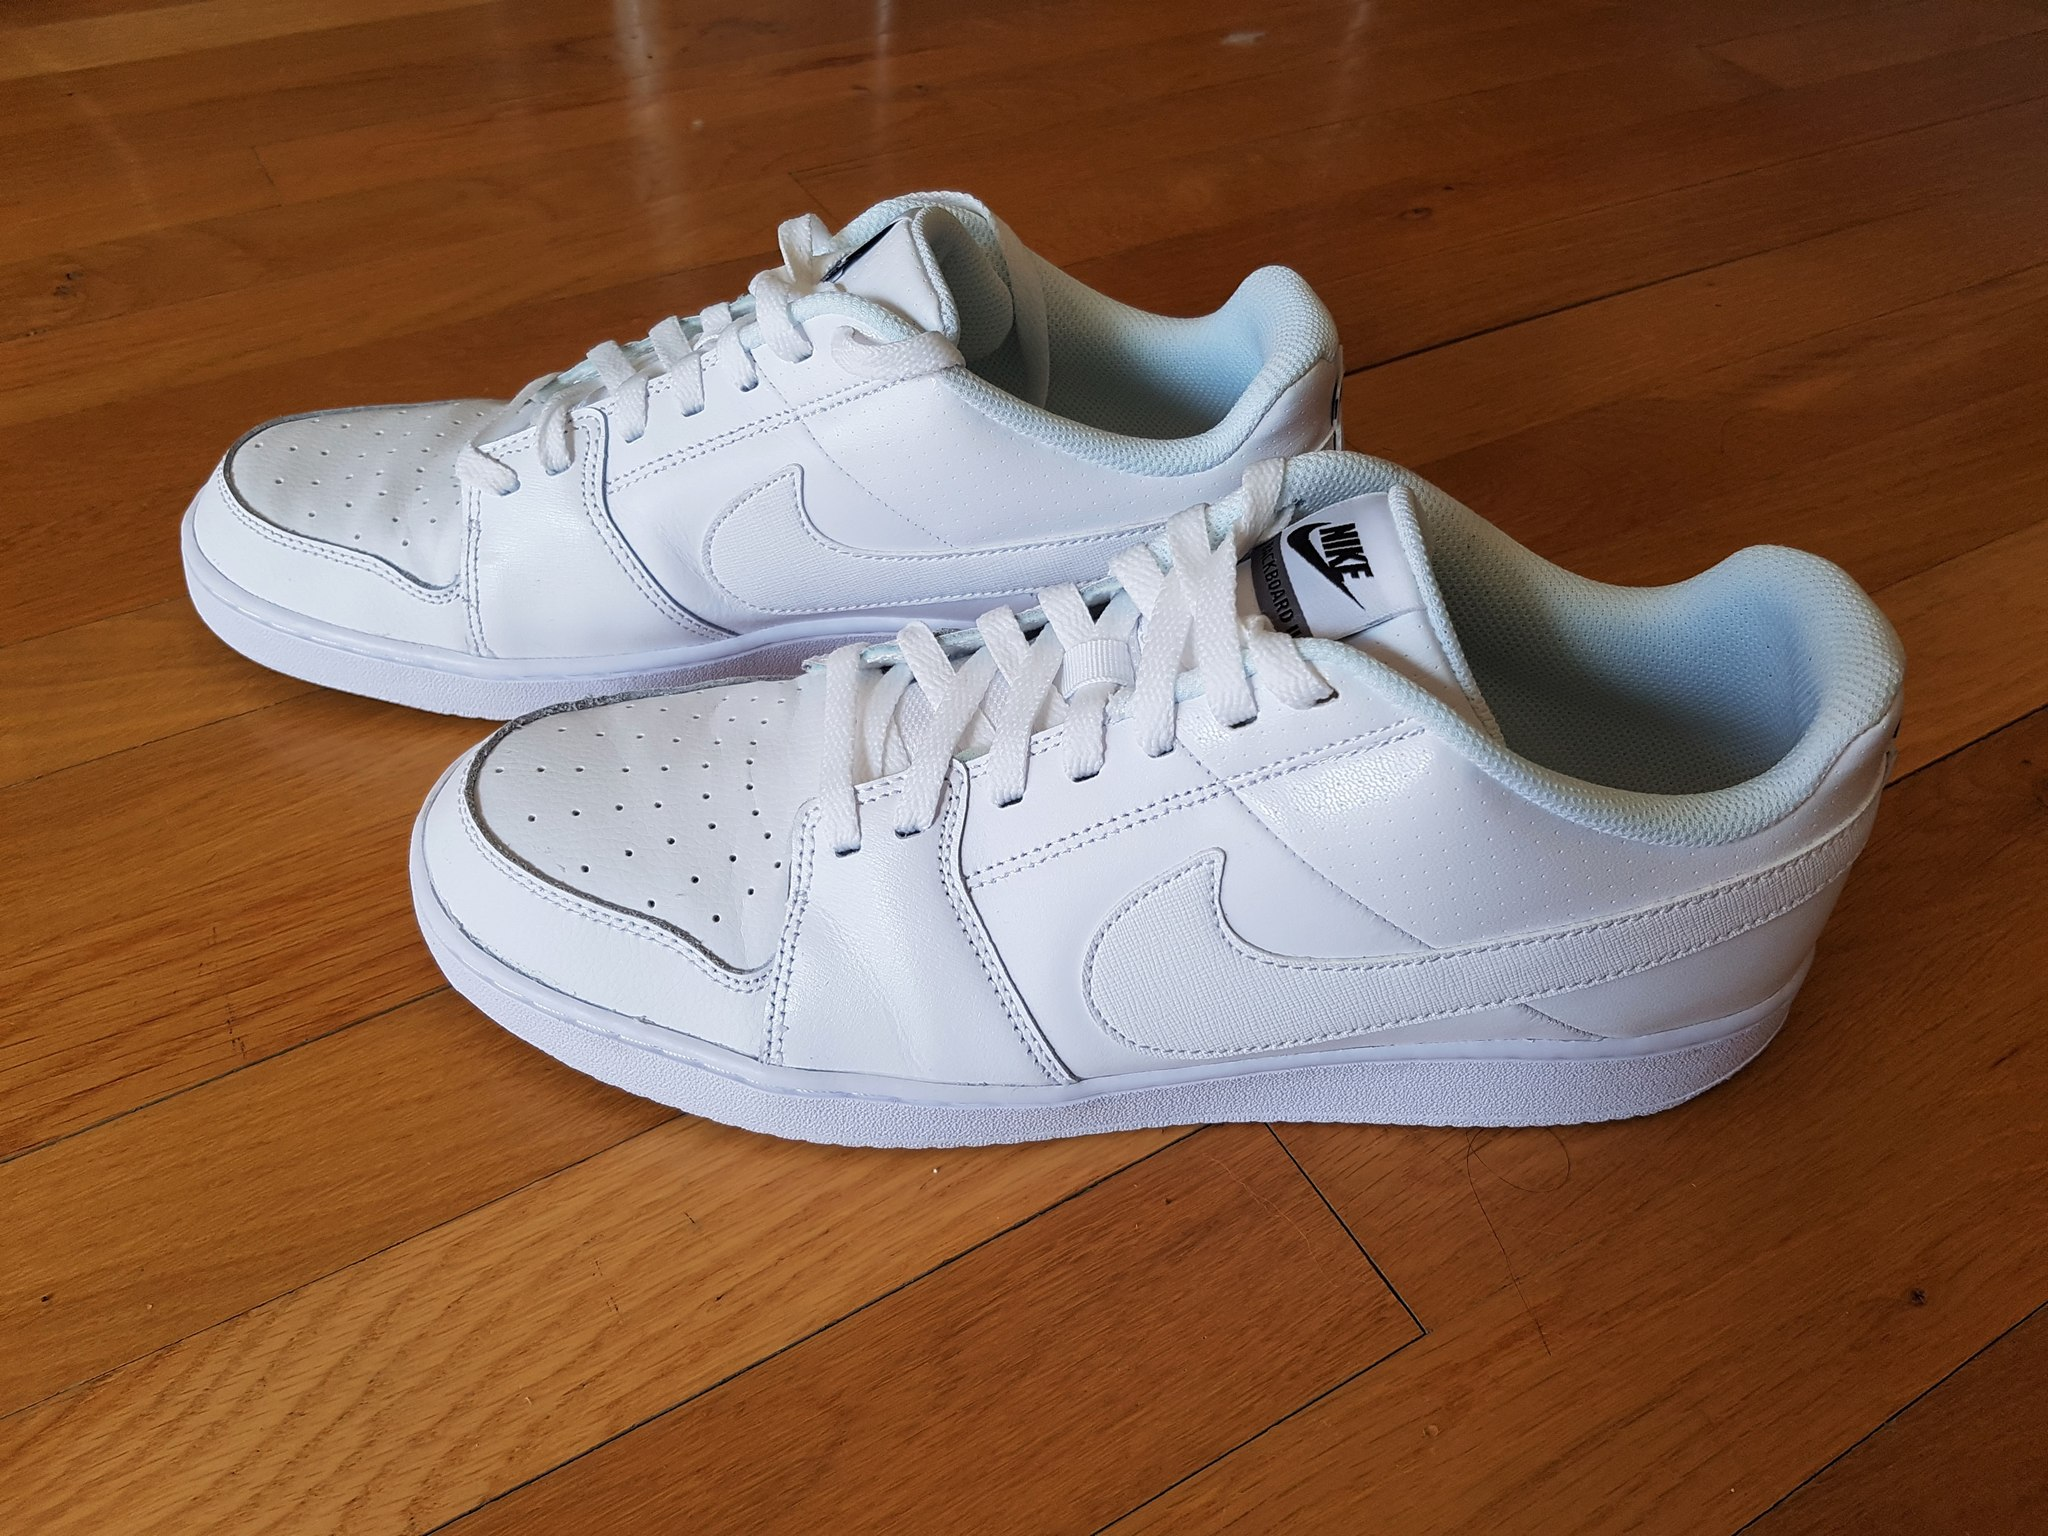 Nike Backboard II White Sneakers for Men (2)